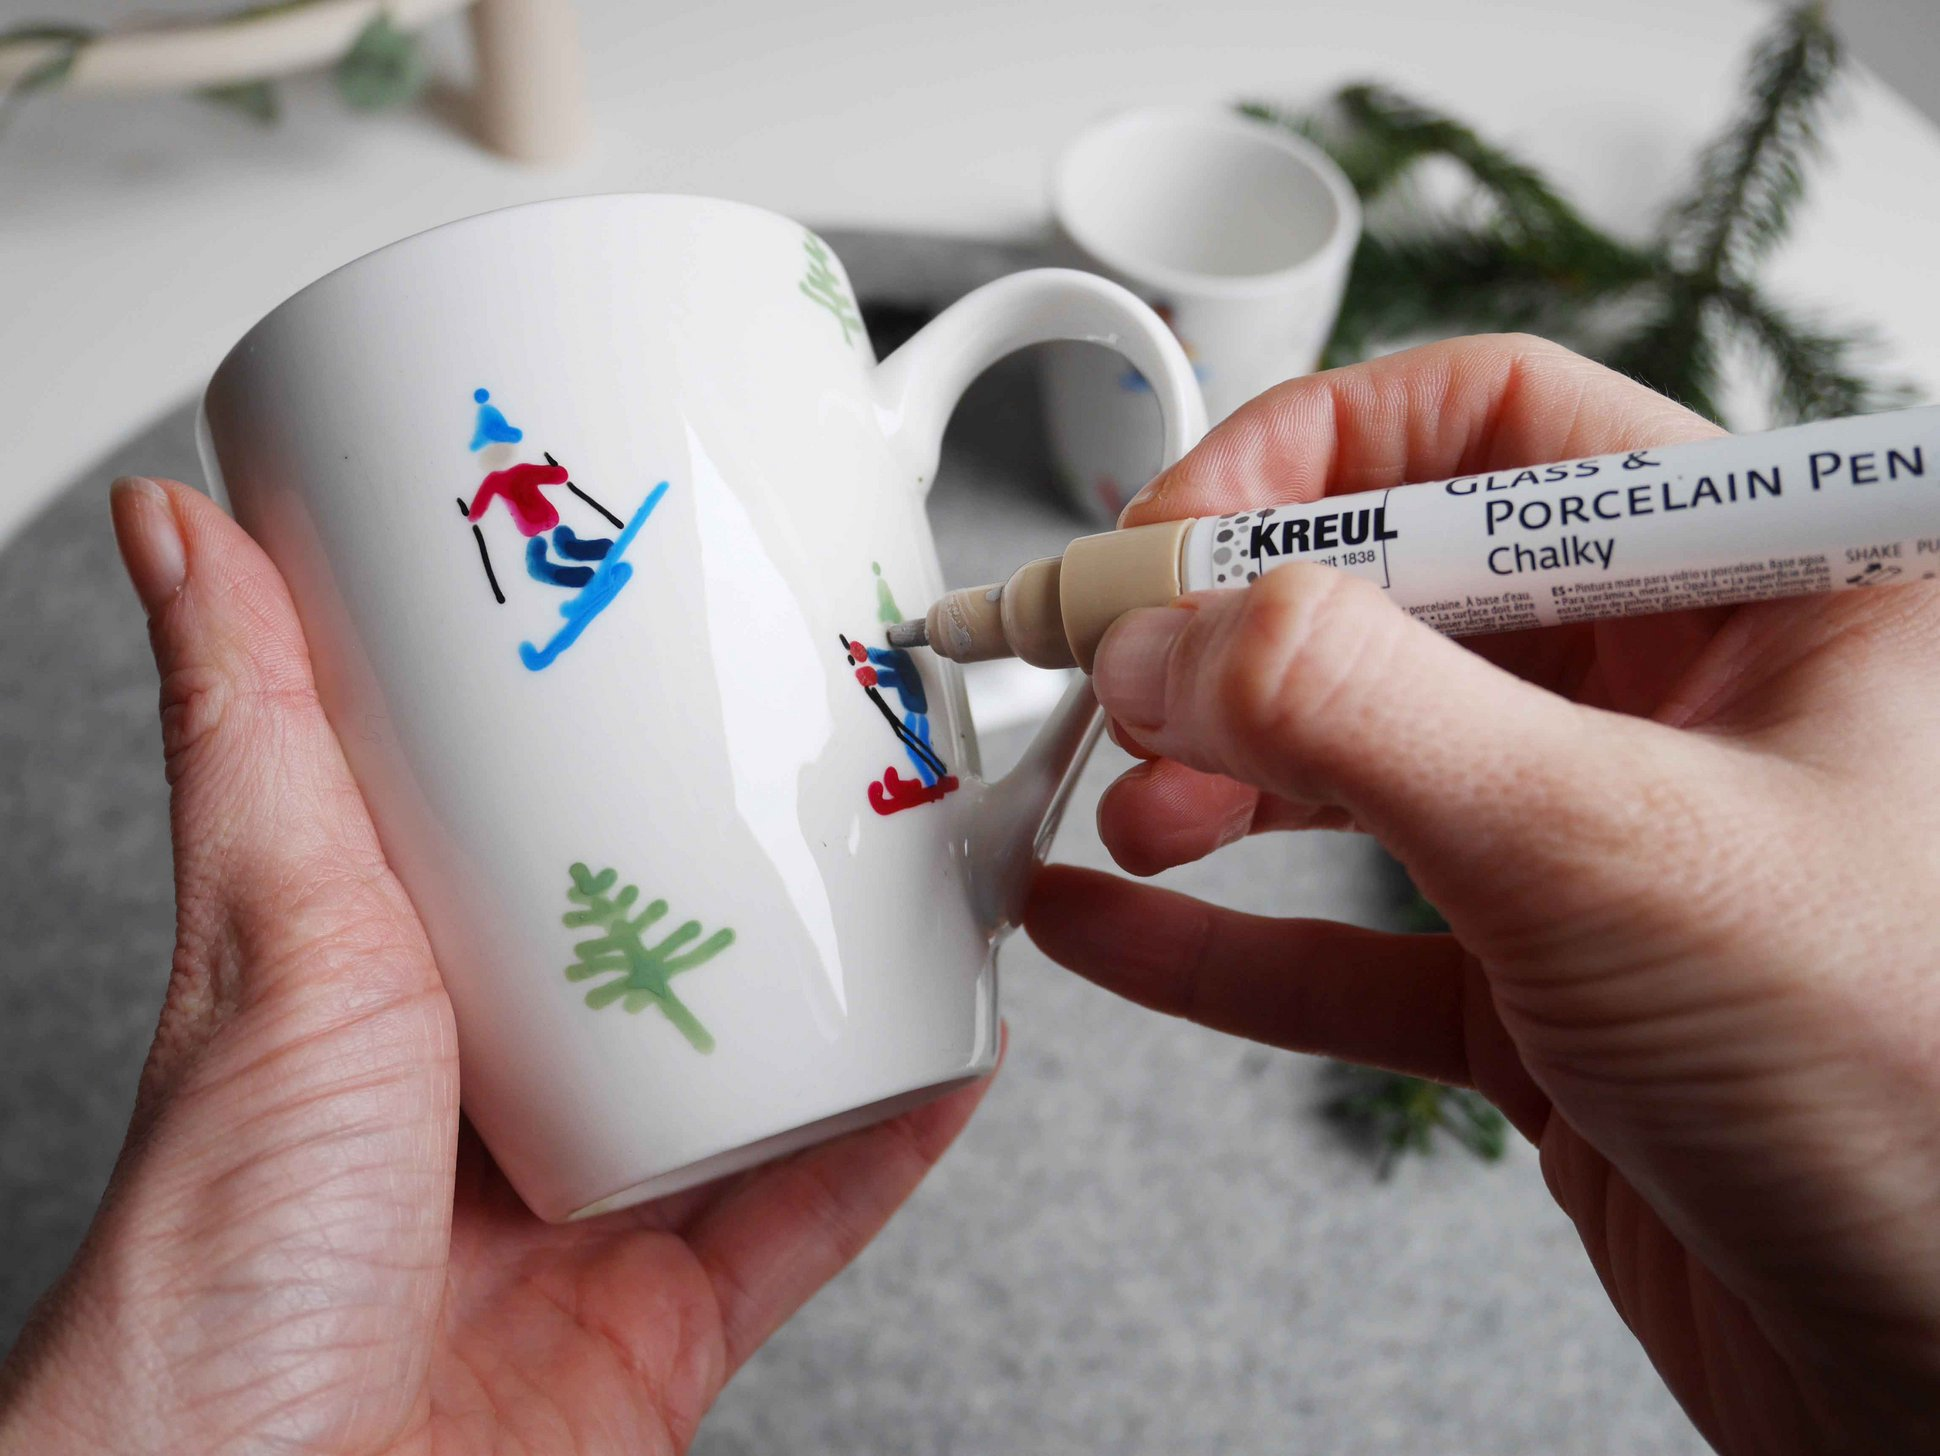 KREUL Glass Porcelain Pen Winter Tasse Ski Design malen